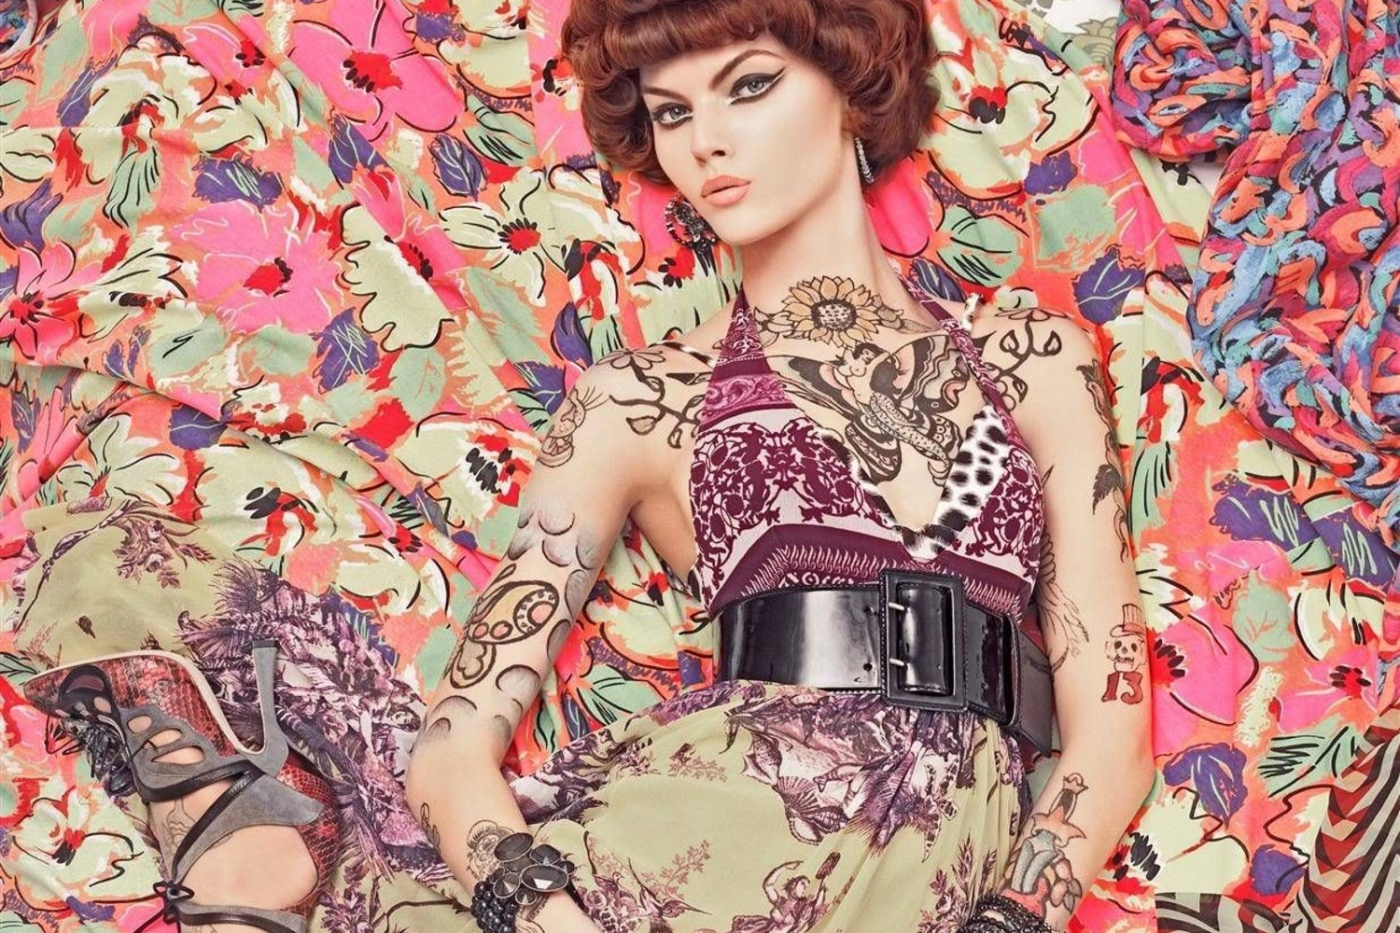 fashion photographers Top Fashion Photographers of All Times feature image 2020 12 03T153225